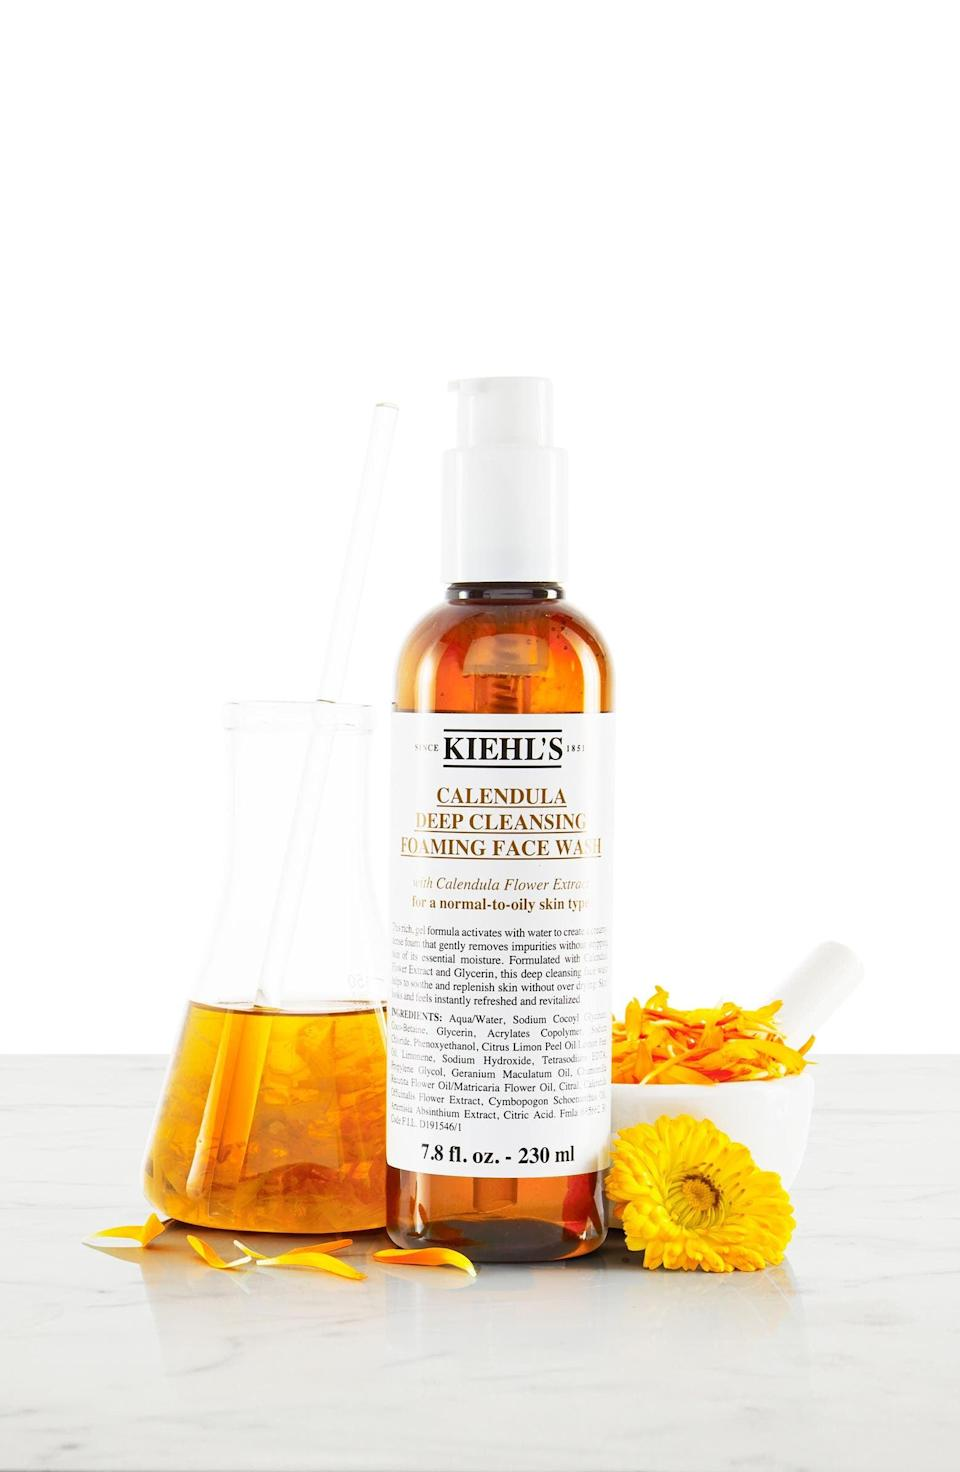 <p><span>Kiehl's Calendula Deep Cleansing Foaming Face Wash for Normal-to-Oily Skin</span> ($13-$42, originally $16-$52)</p>